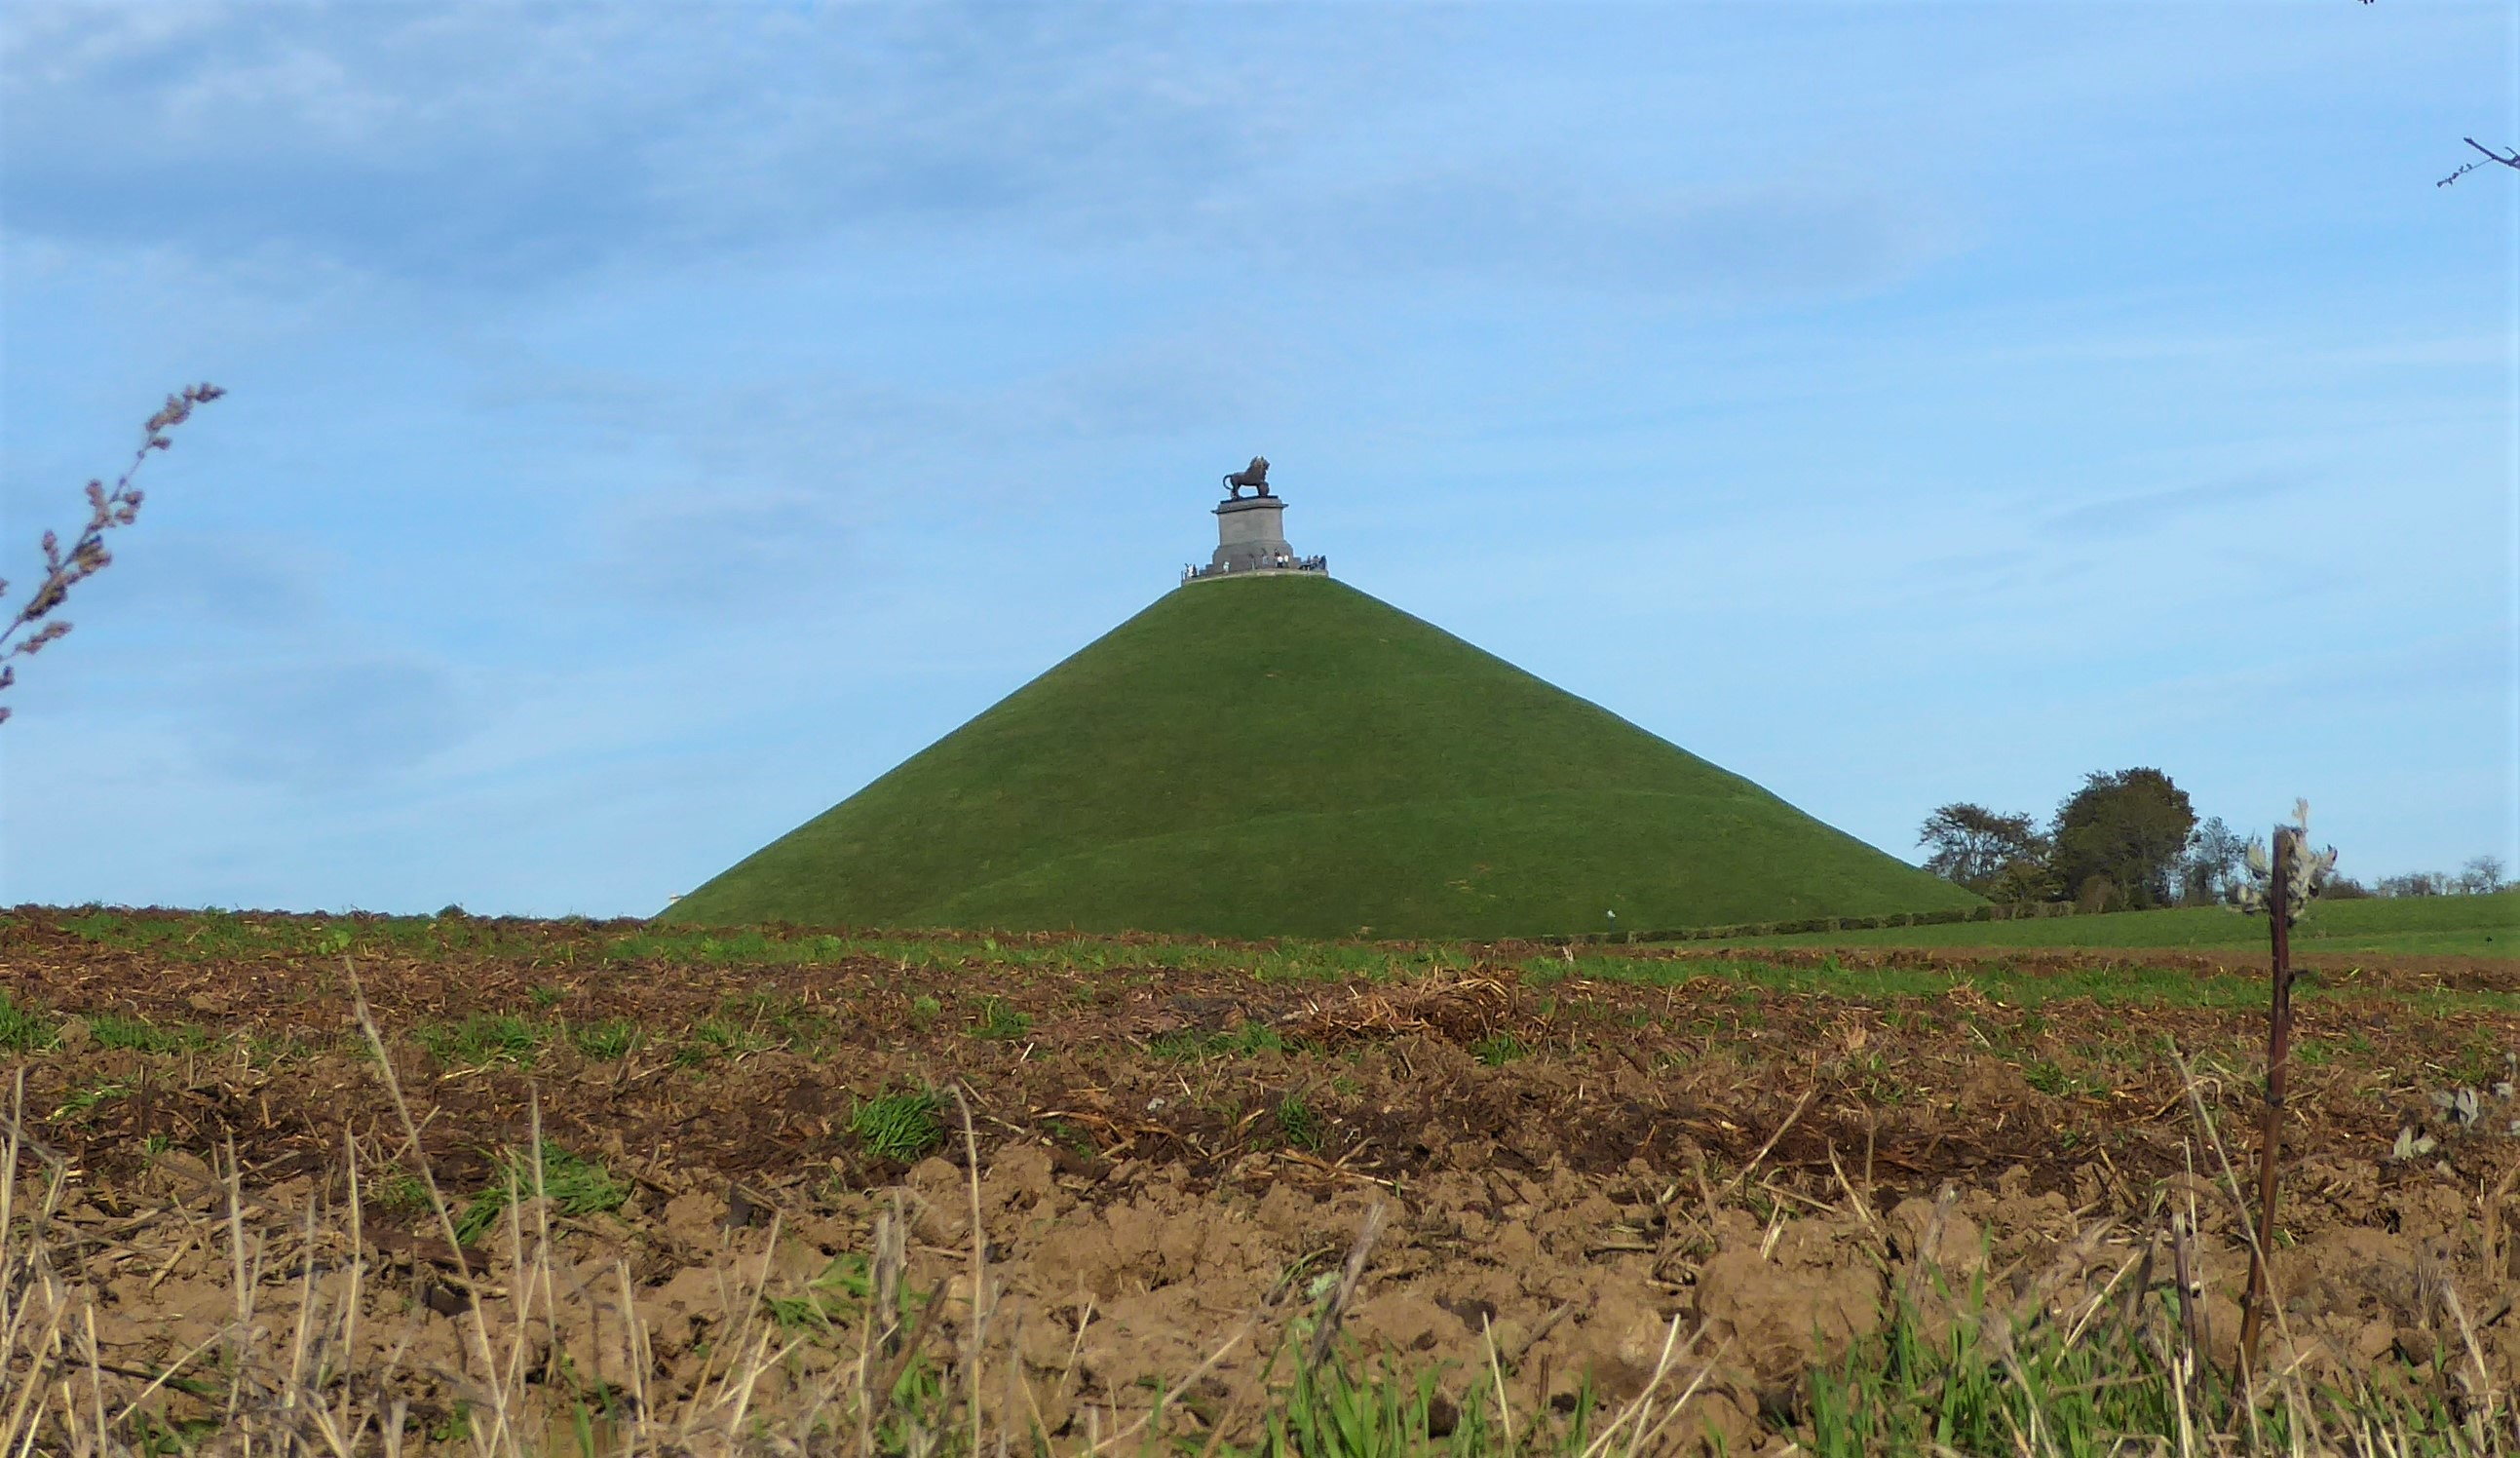 The Lion's Mound Waterloo